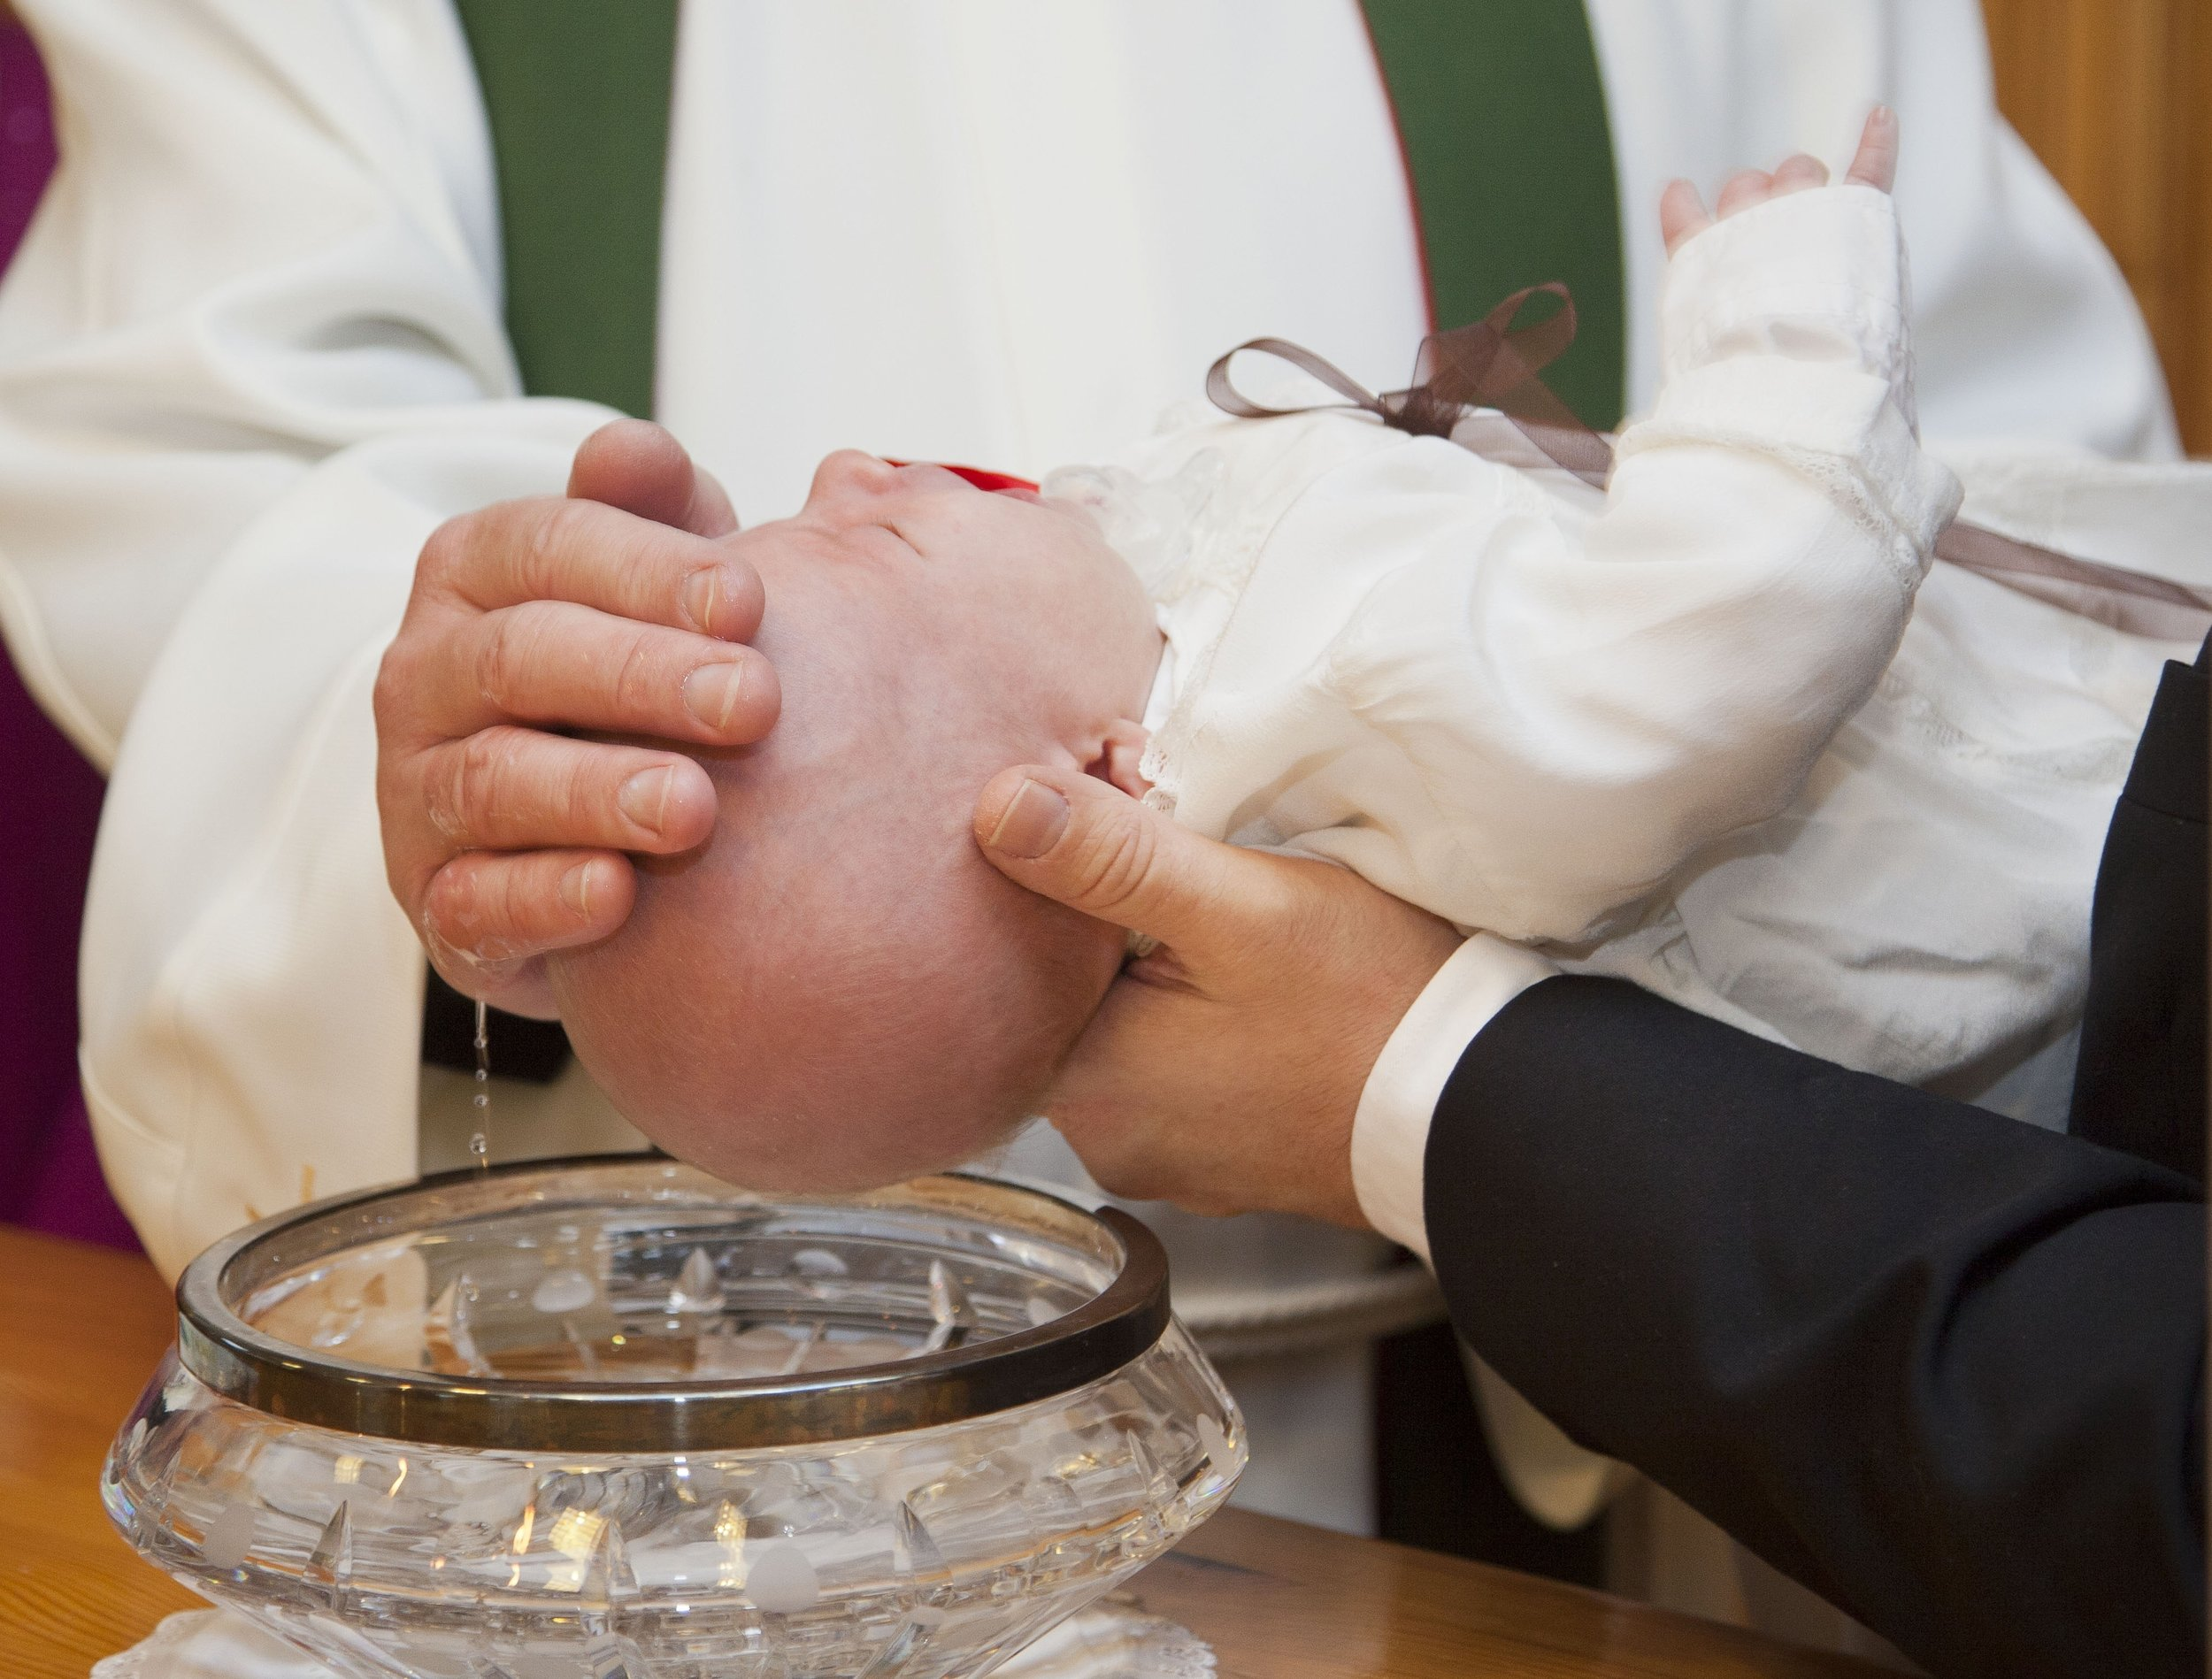 Sacrament of Baptism (Pastor with Green Stole)